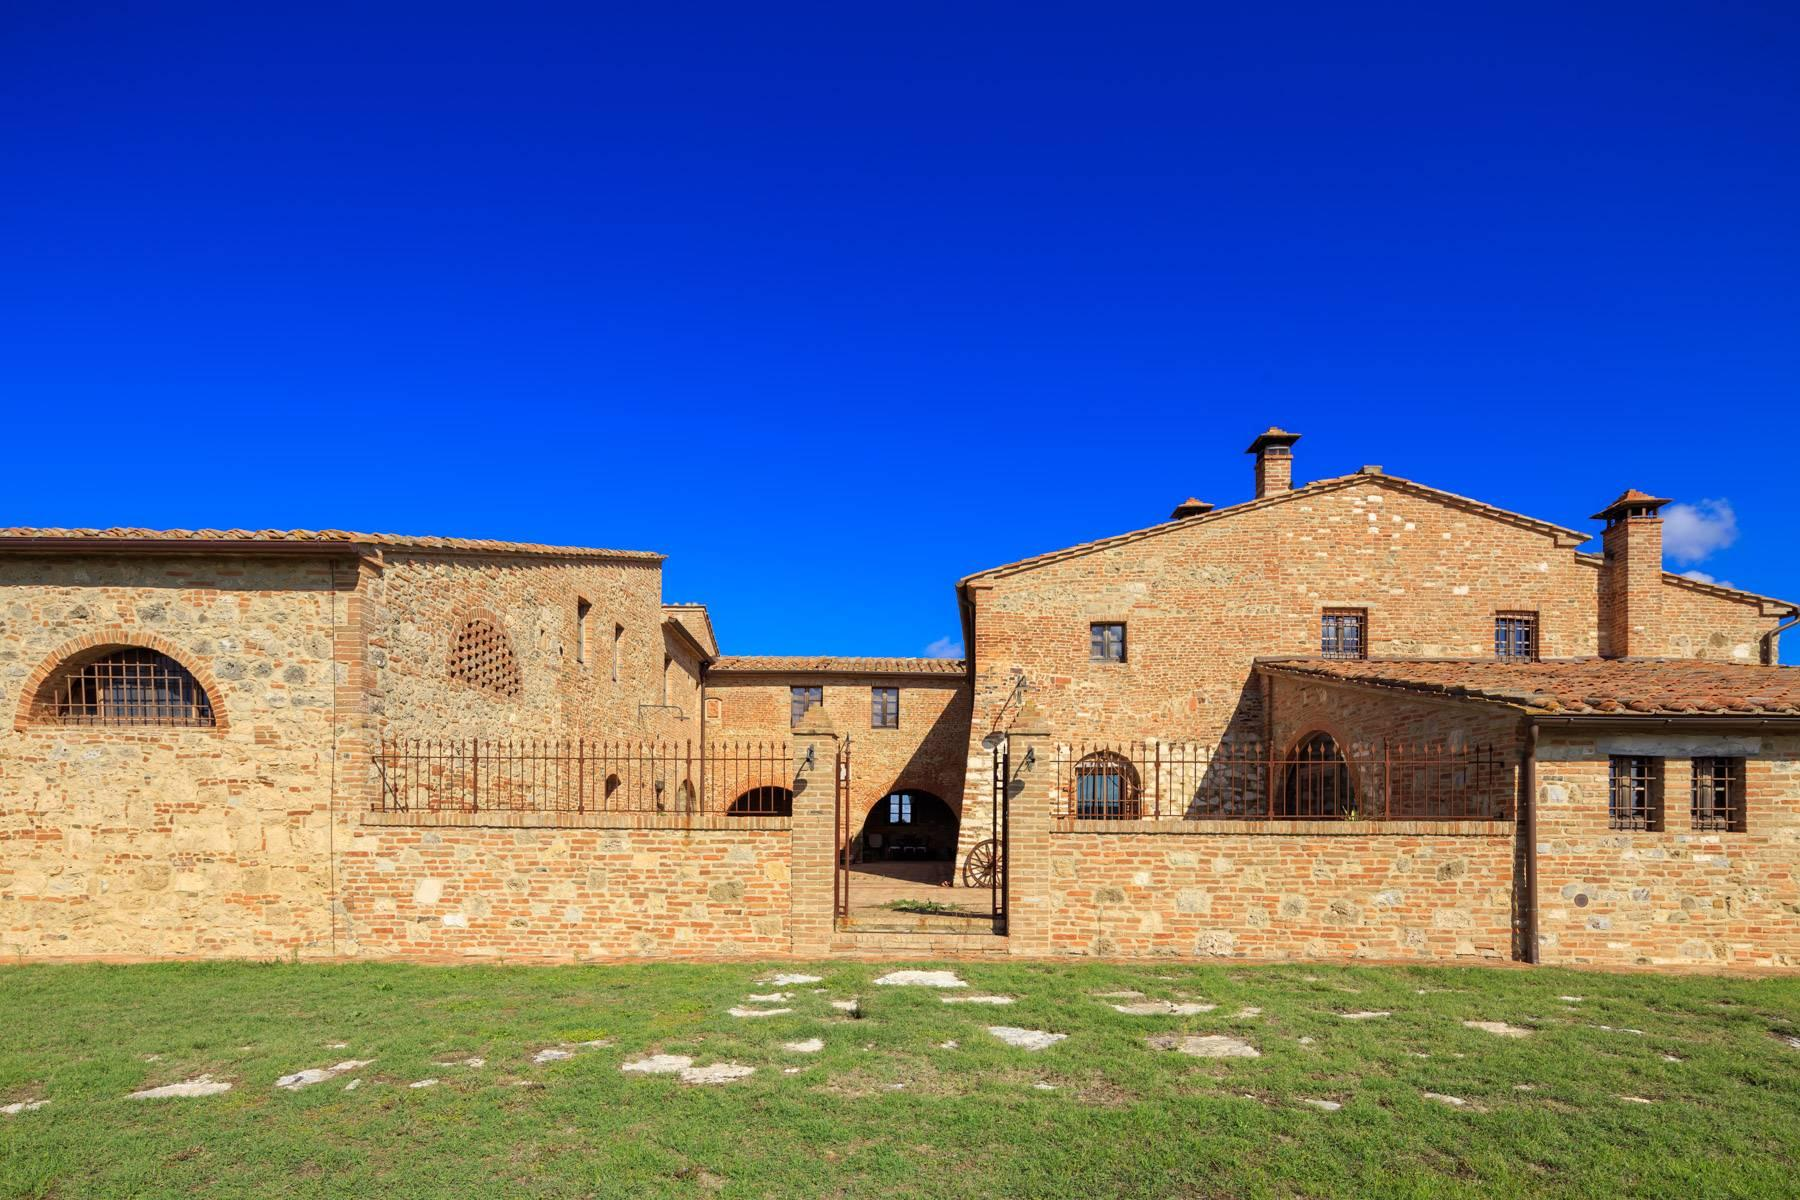 Wonderful tuscan countryhouse on the hills around Siena - 4